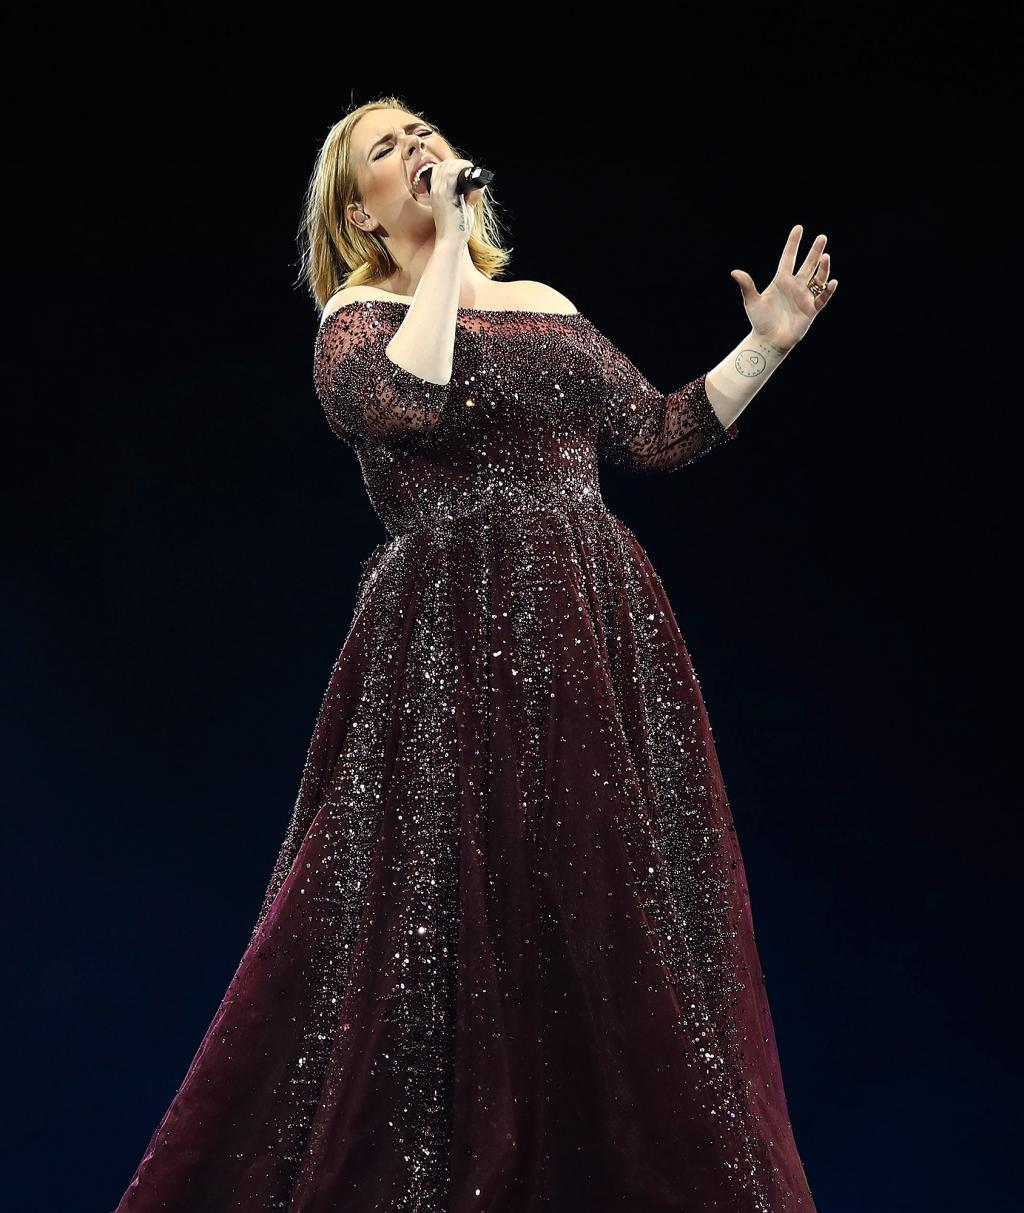 Adele Dedicates        Make You Feel My Love      '  to London Terror Attack Victims at Auckland Concert